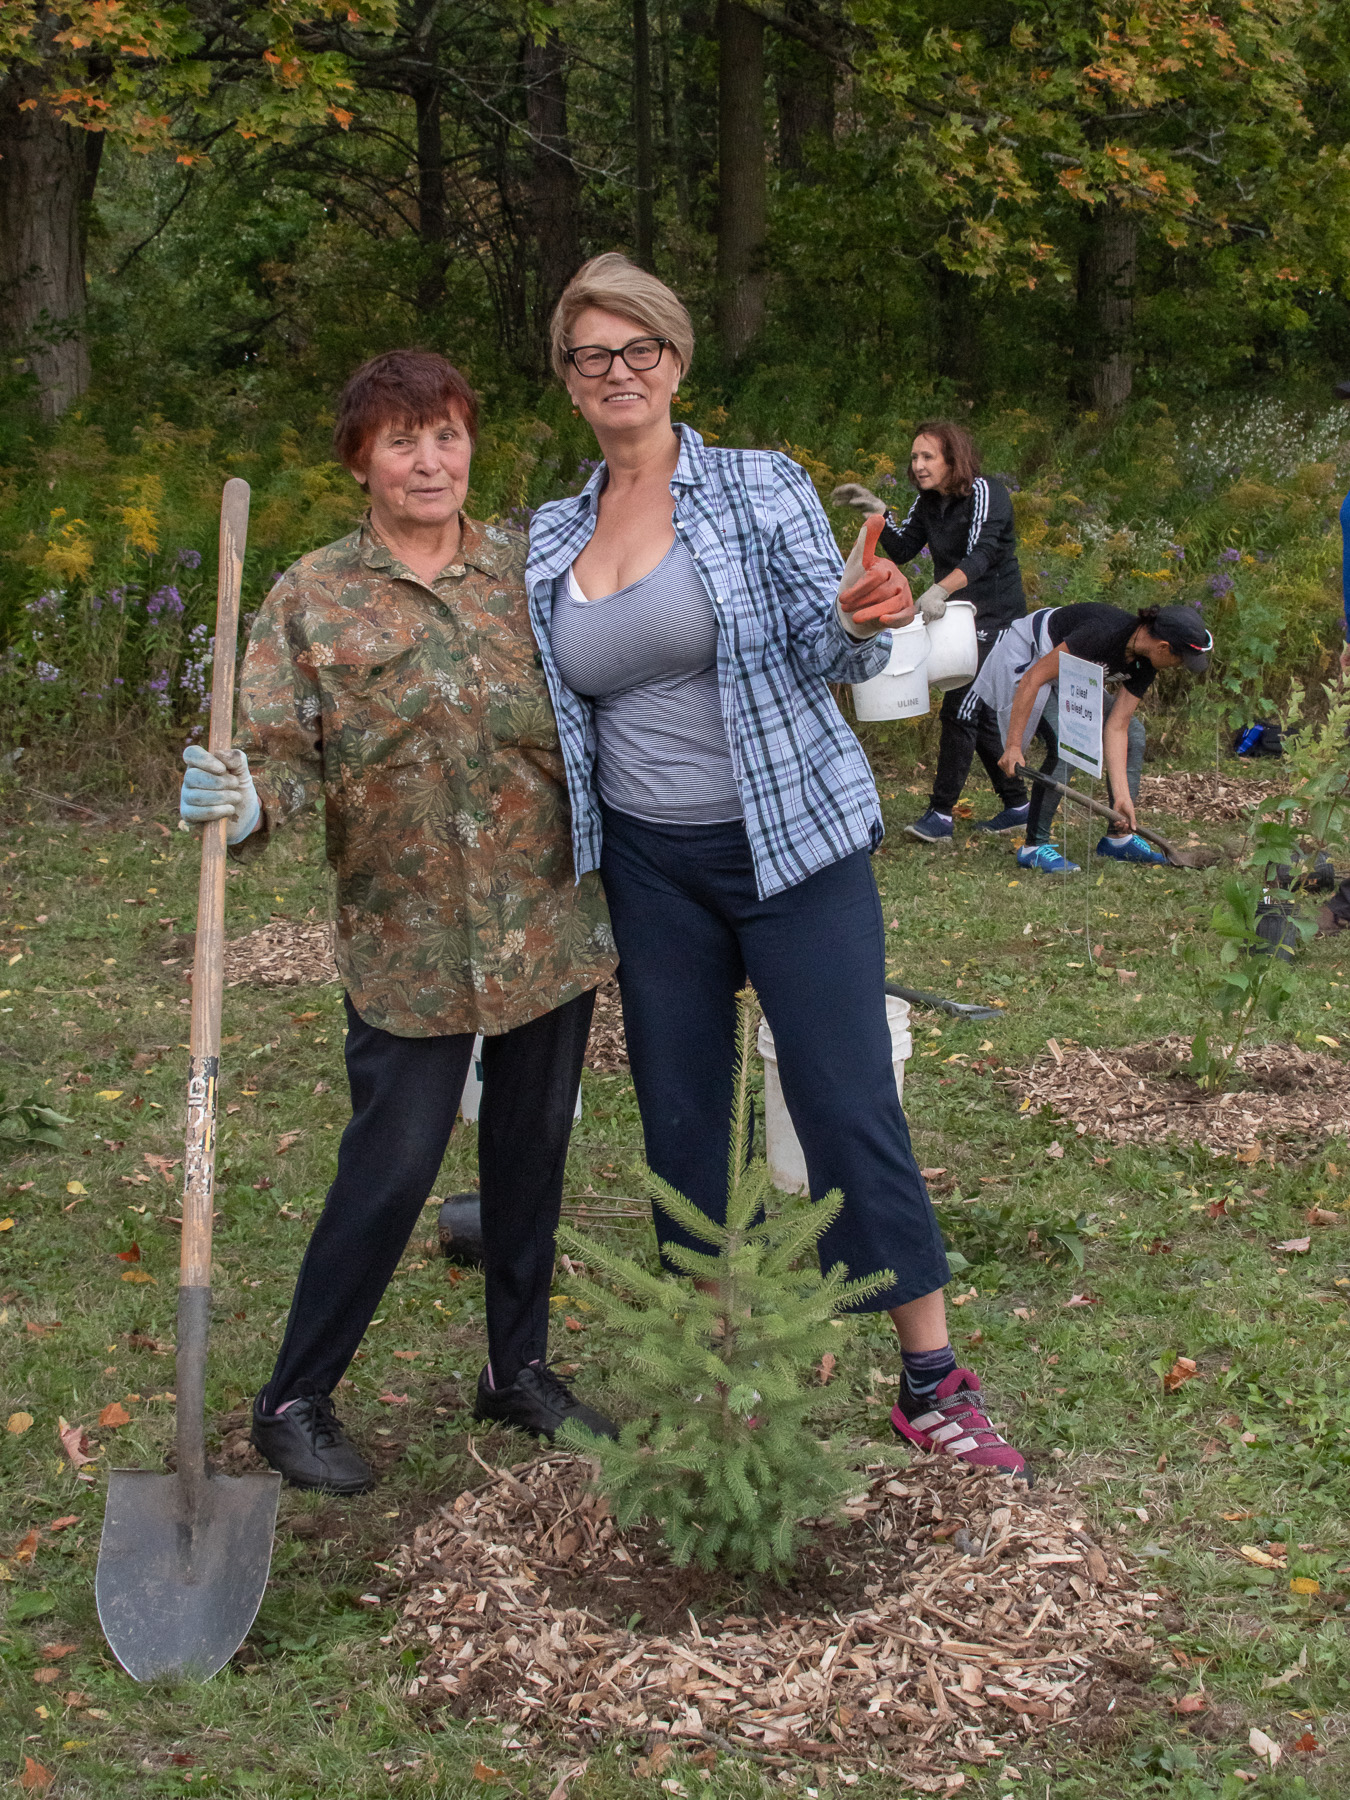 Two women posing next to the tree they planted